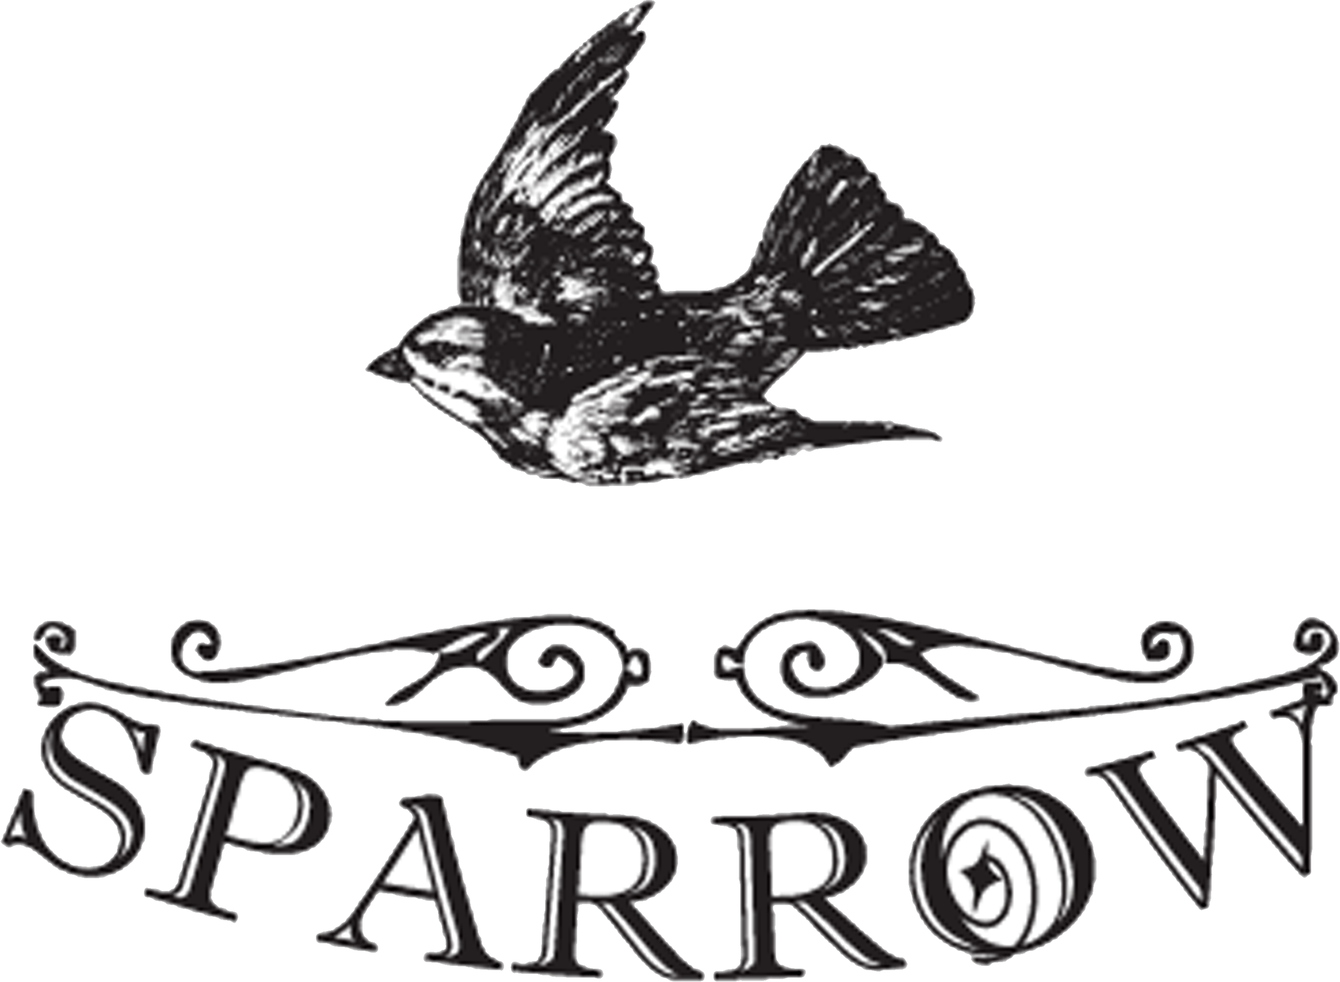 Sparrow Fragrances